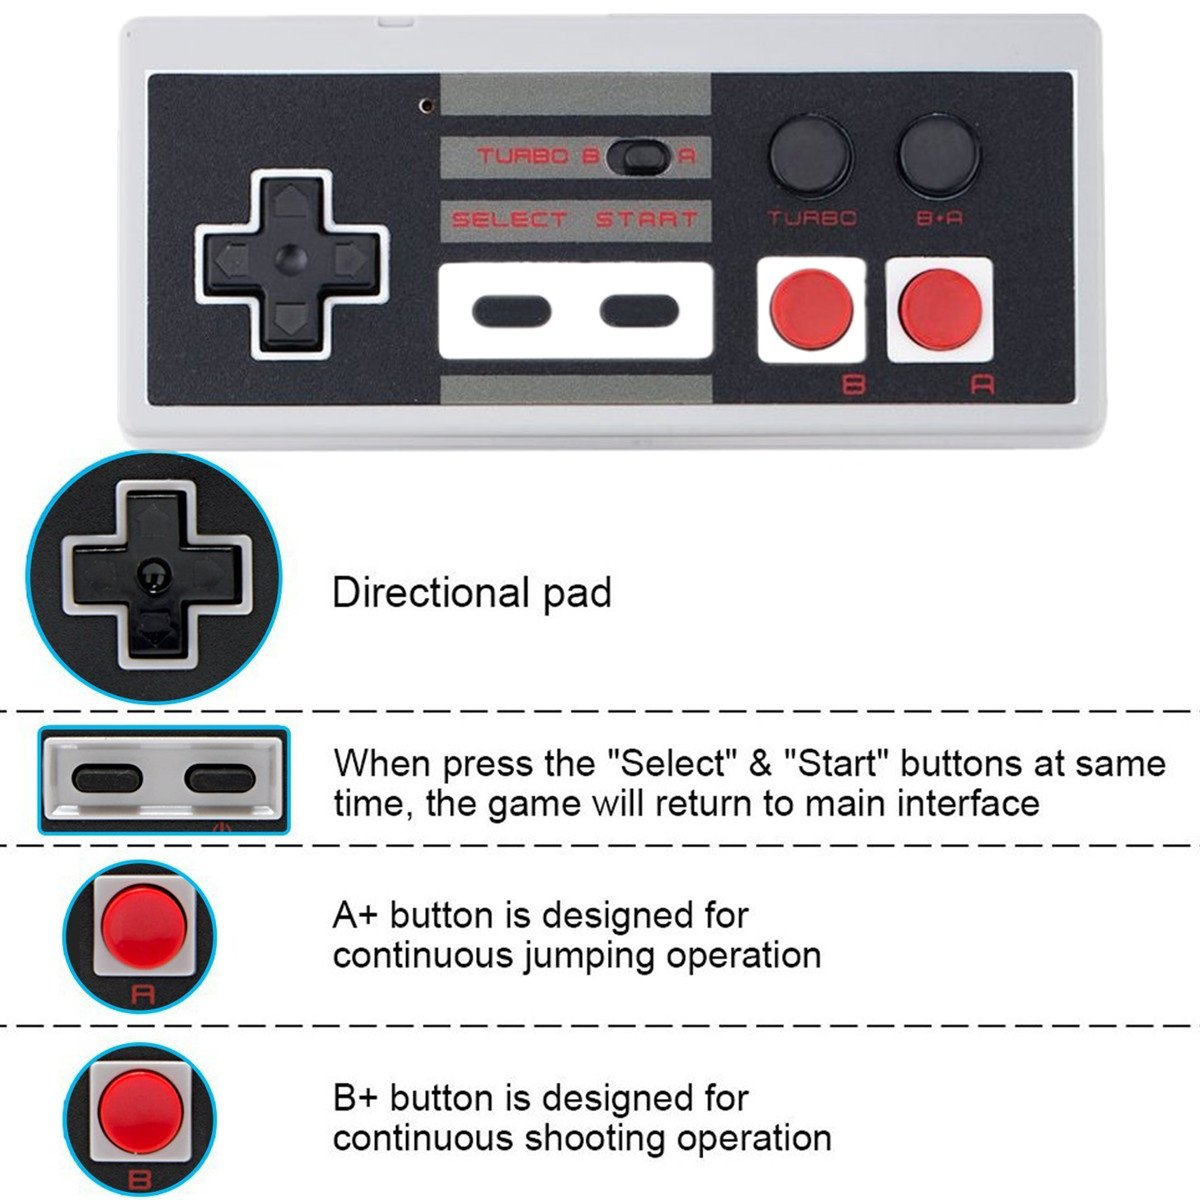 Wireless NES Mini Classic Rechargeable Controller,NES Wireless Gamepad for Nintendo Mini NES Classic Edition, Wireless Joypad & Gamepads Controller (2 Pack) by Kyerivs (Image #3)